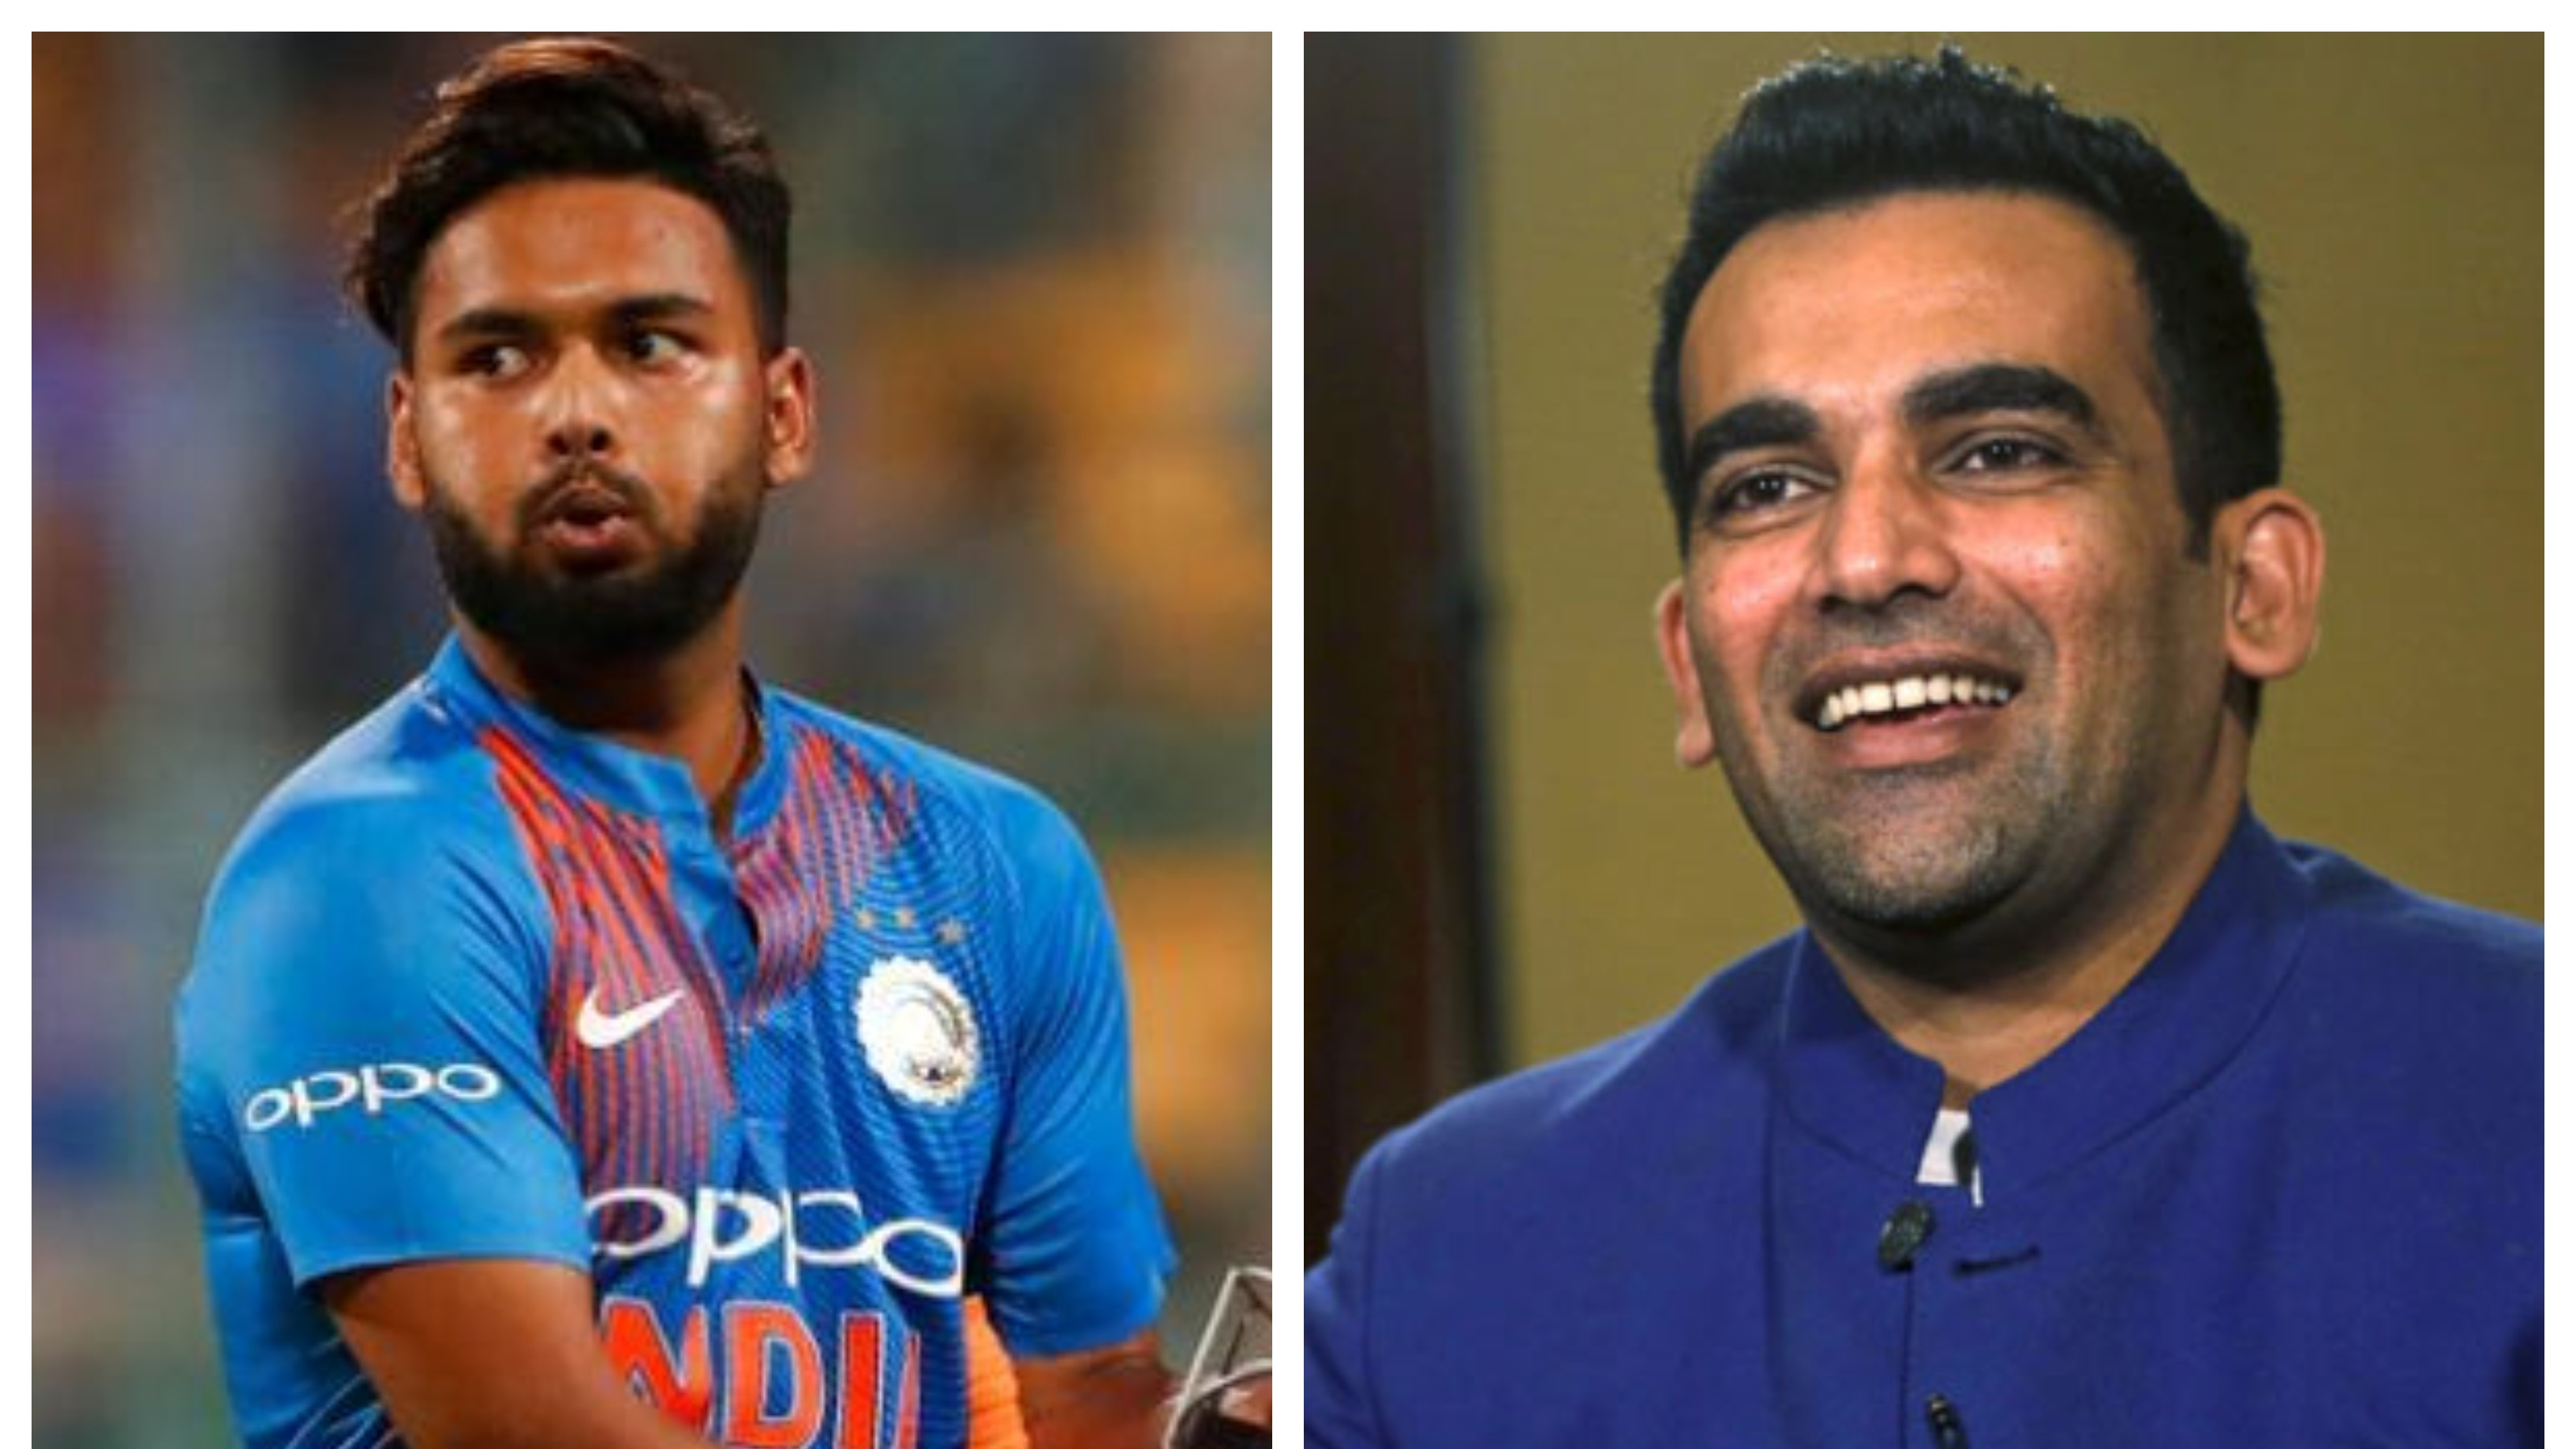 IND v SA 2019: Zaheer asks team management to define Pant's role better